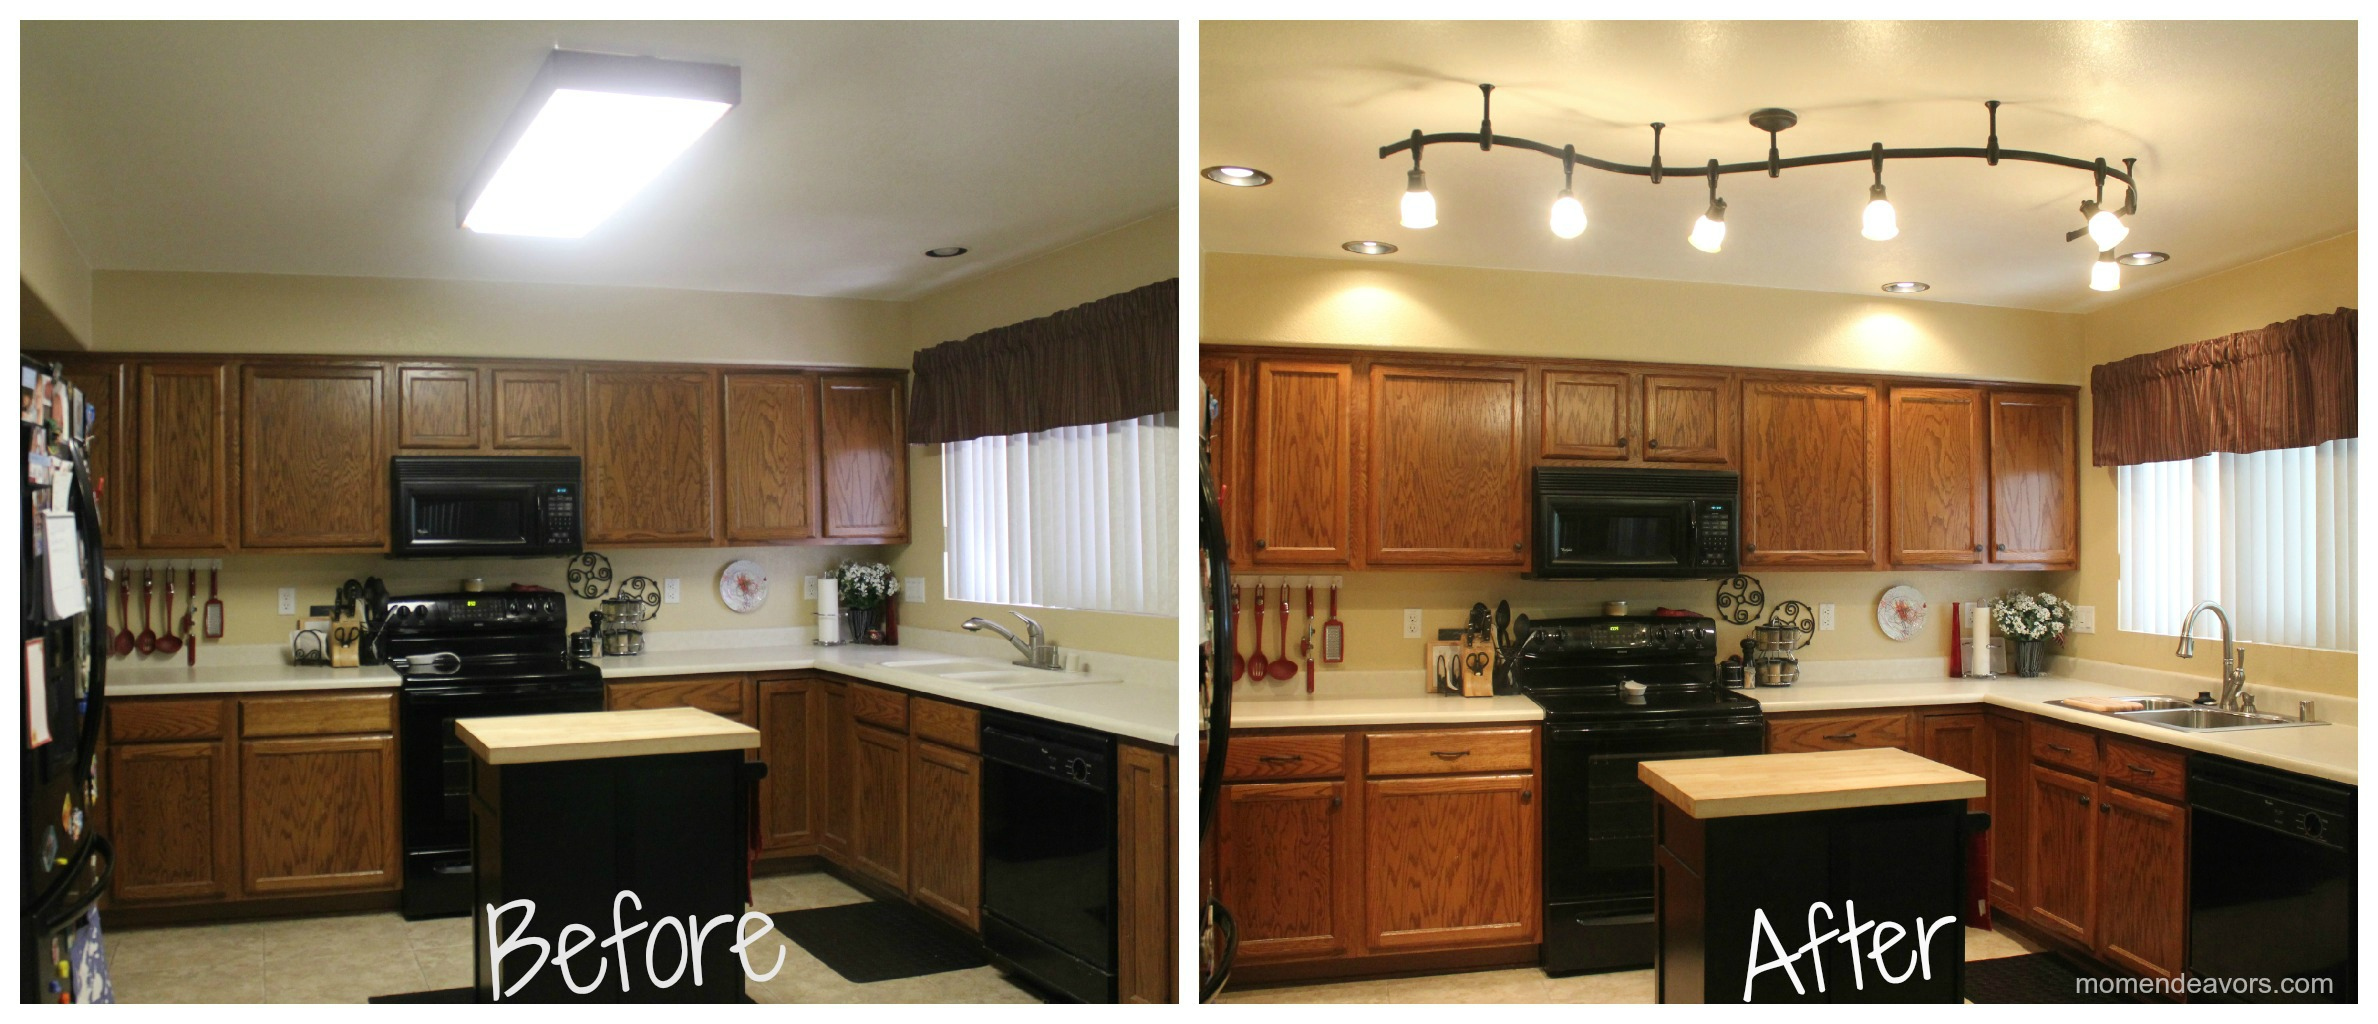 Mini kitchen remodel new lighting makes a world of difference - Small kitchen lighting ideas ...